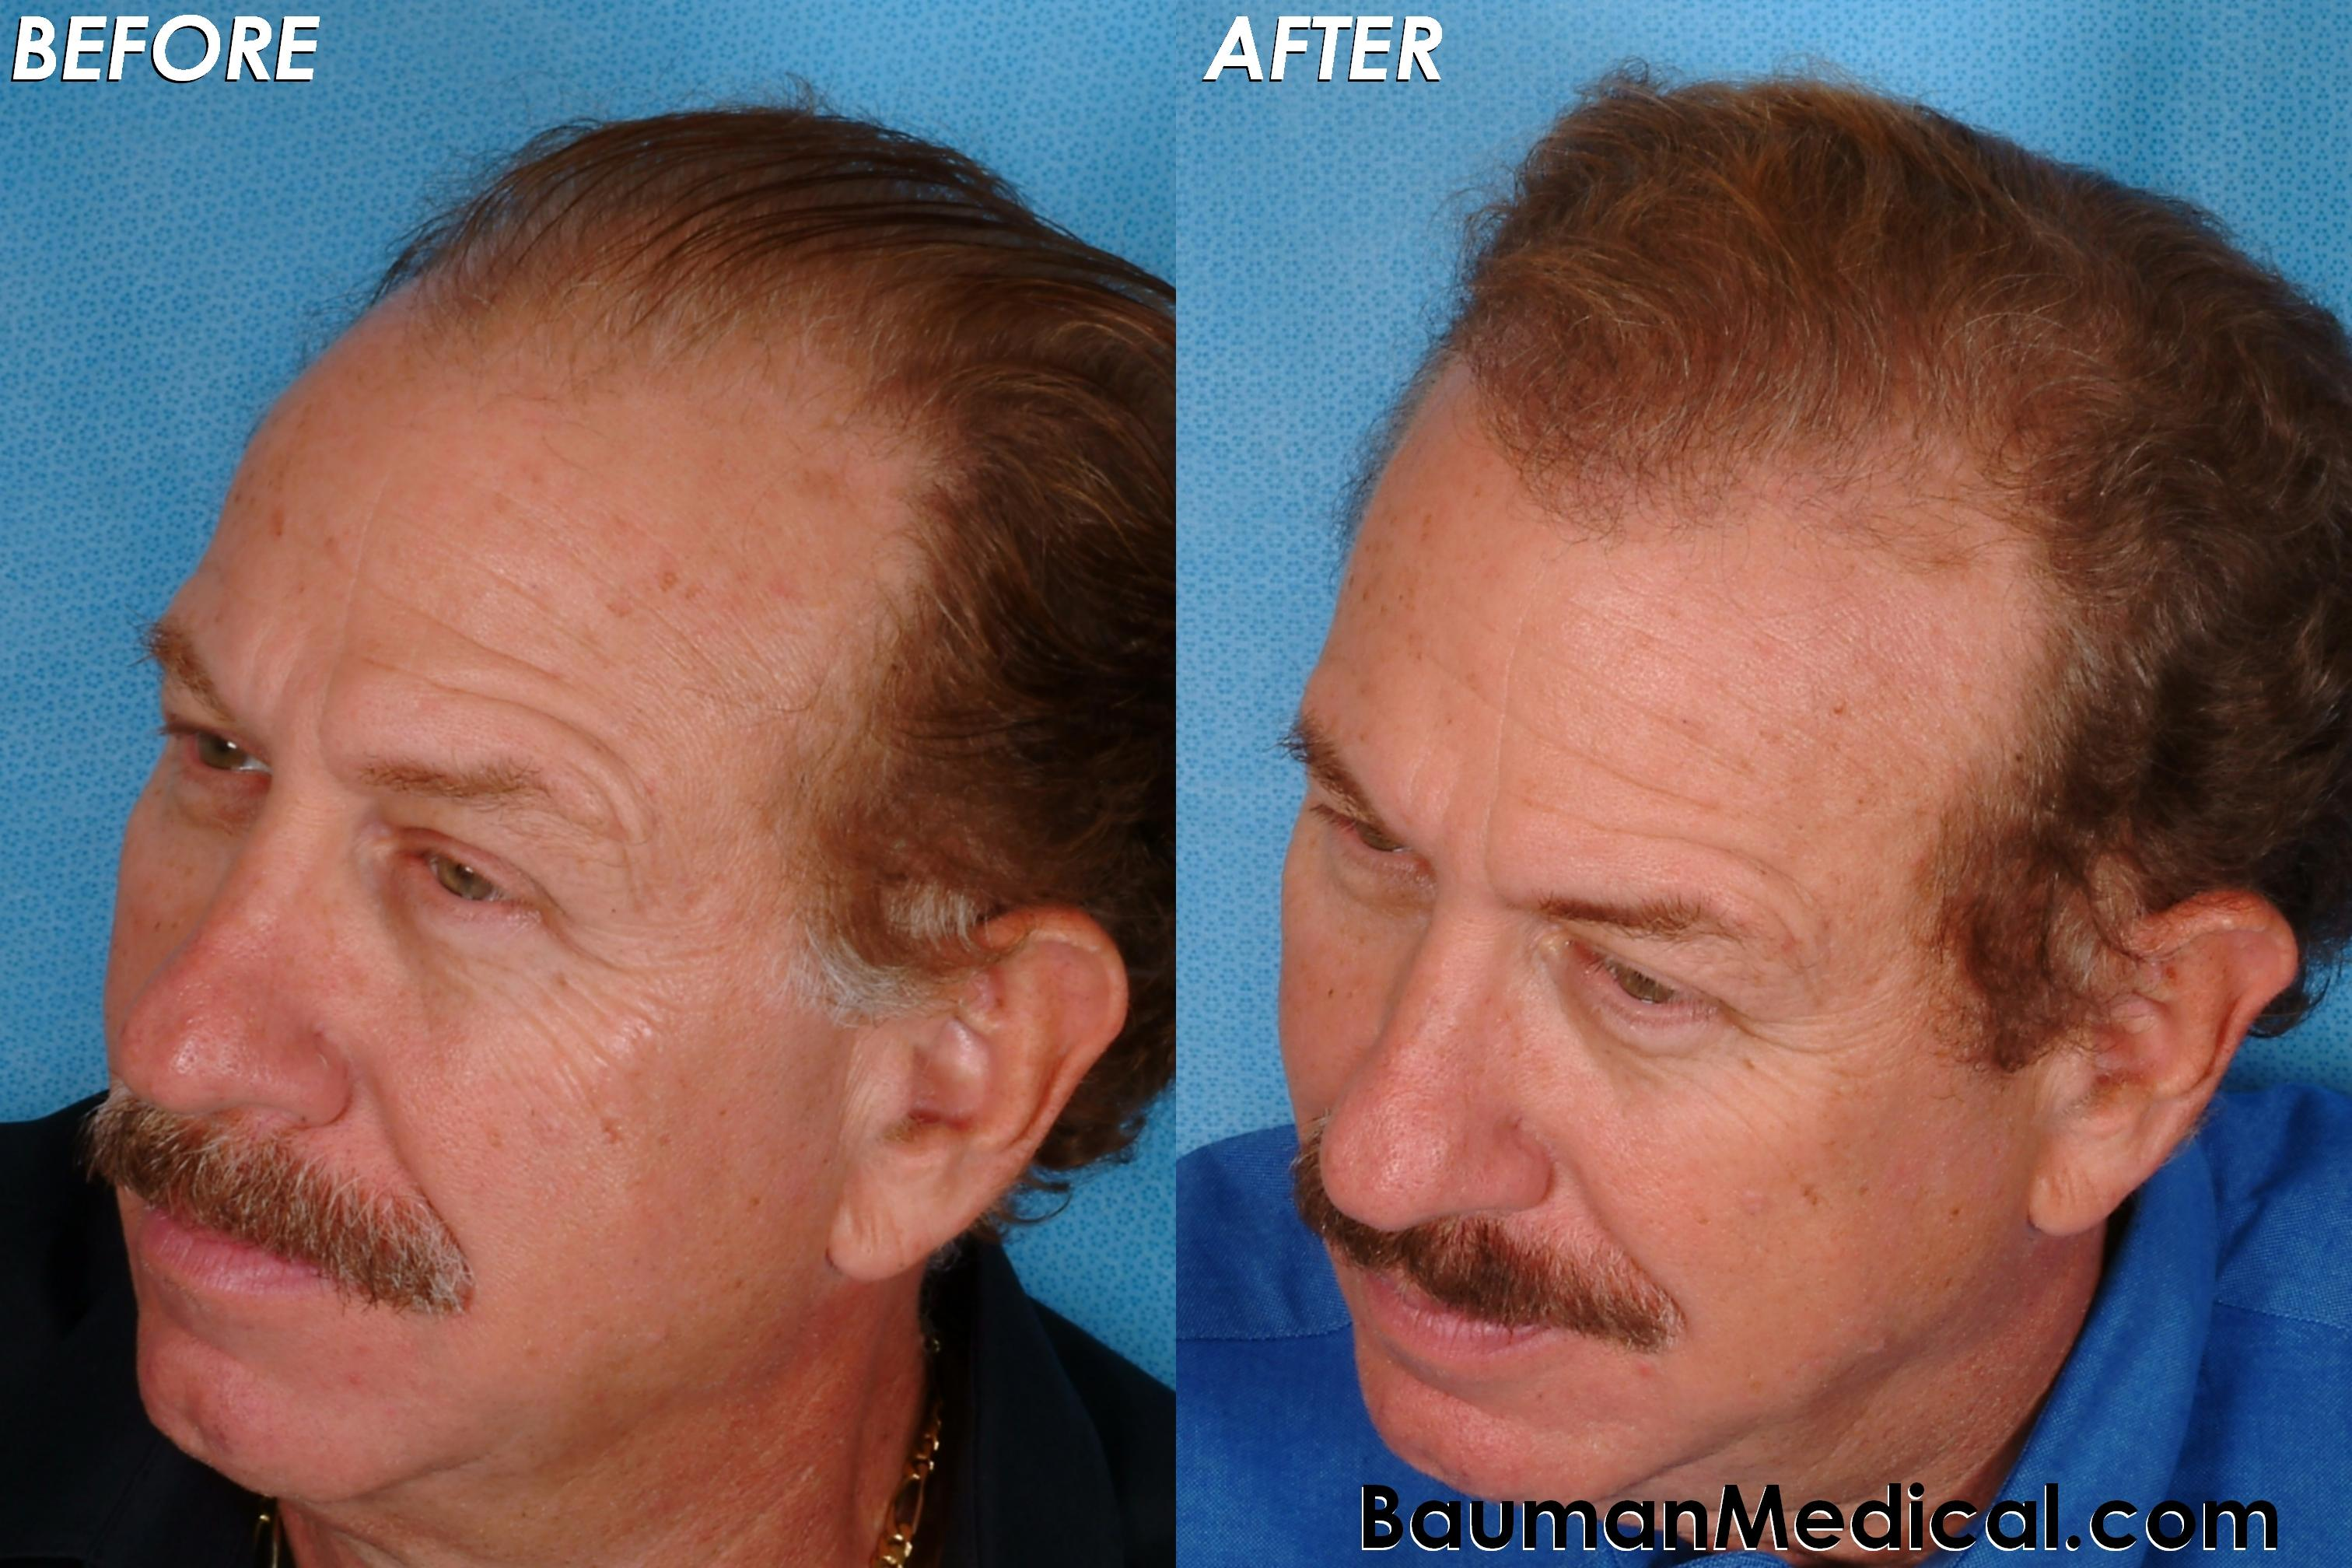 dr alan bauman review plastic surgeon doctor florida